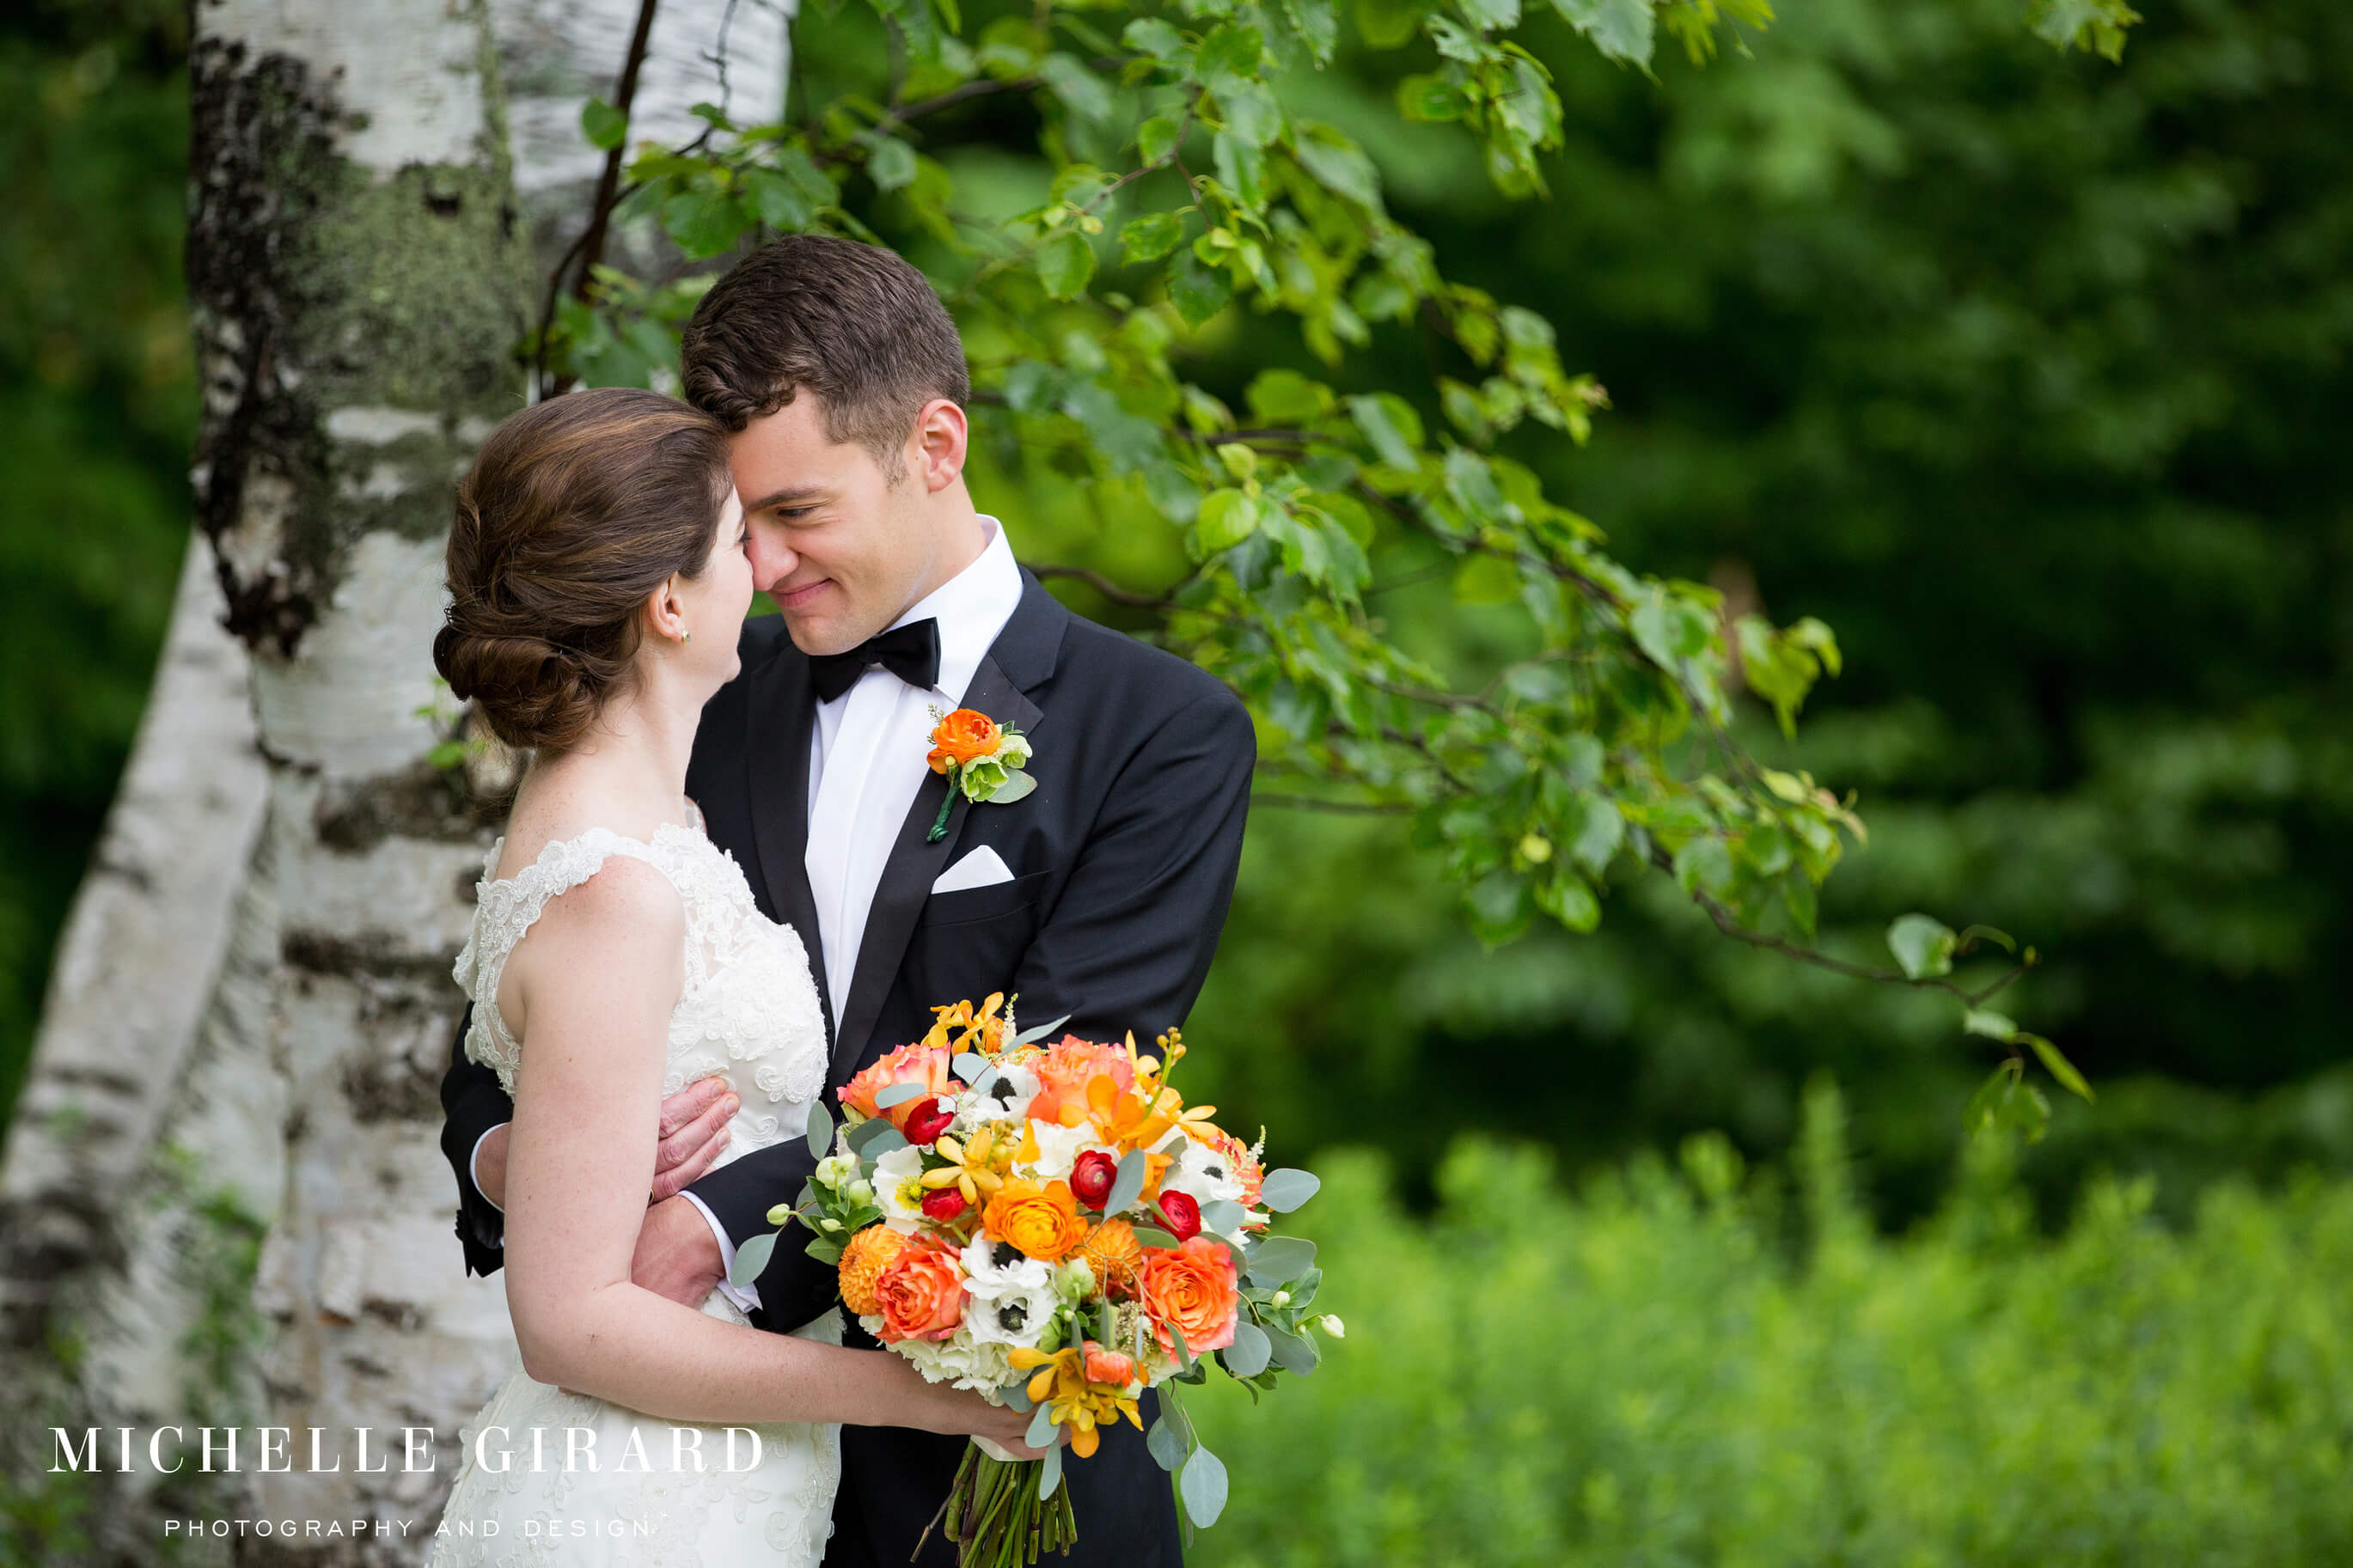 BerkshiresTentWeddingBecketMA_MichelleGirardPhotography173-(ZF-10124-01193-1-013)